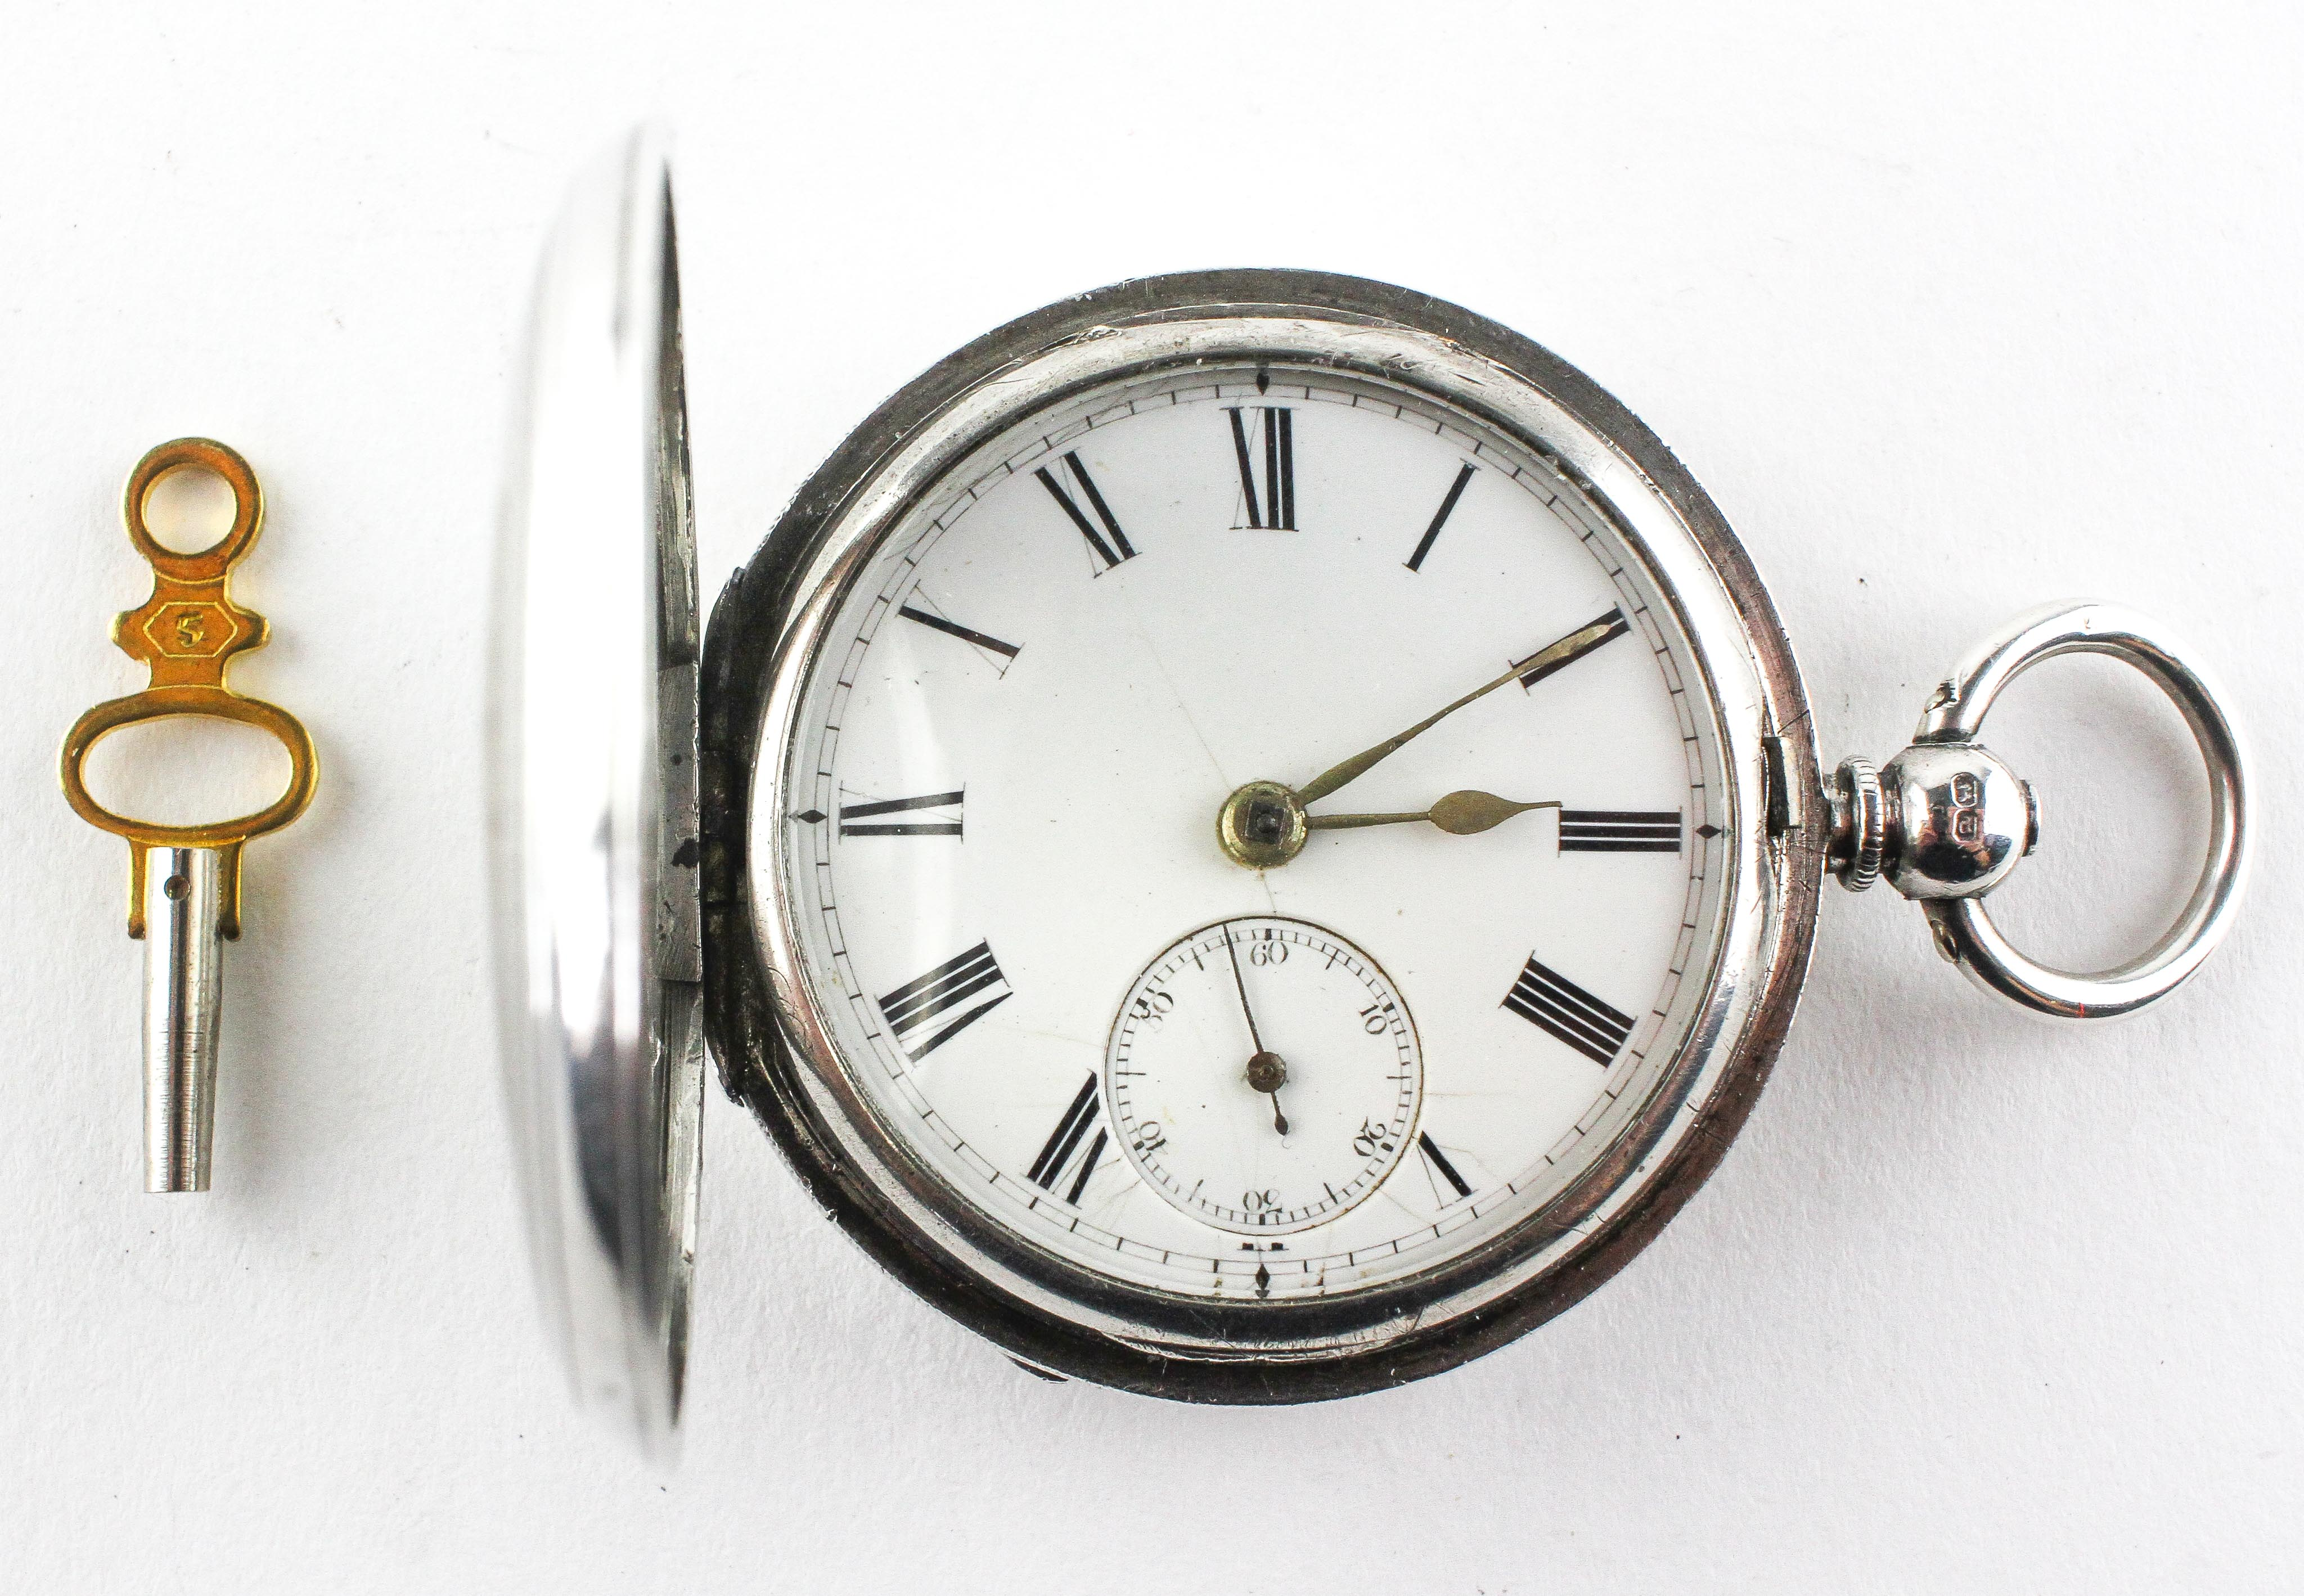 A full hunter pocket watch. Circular white dial with roman numerals. Key wound movement.